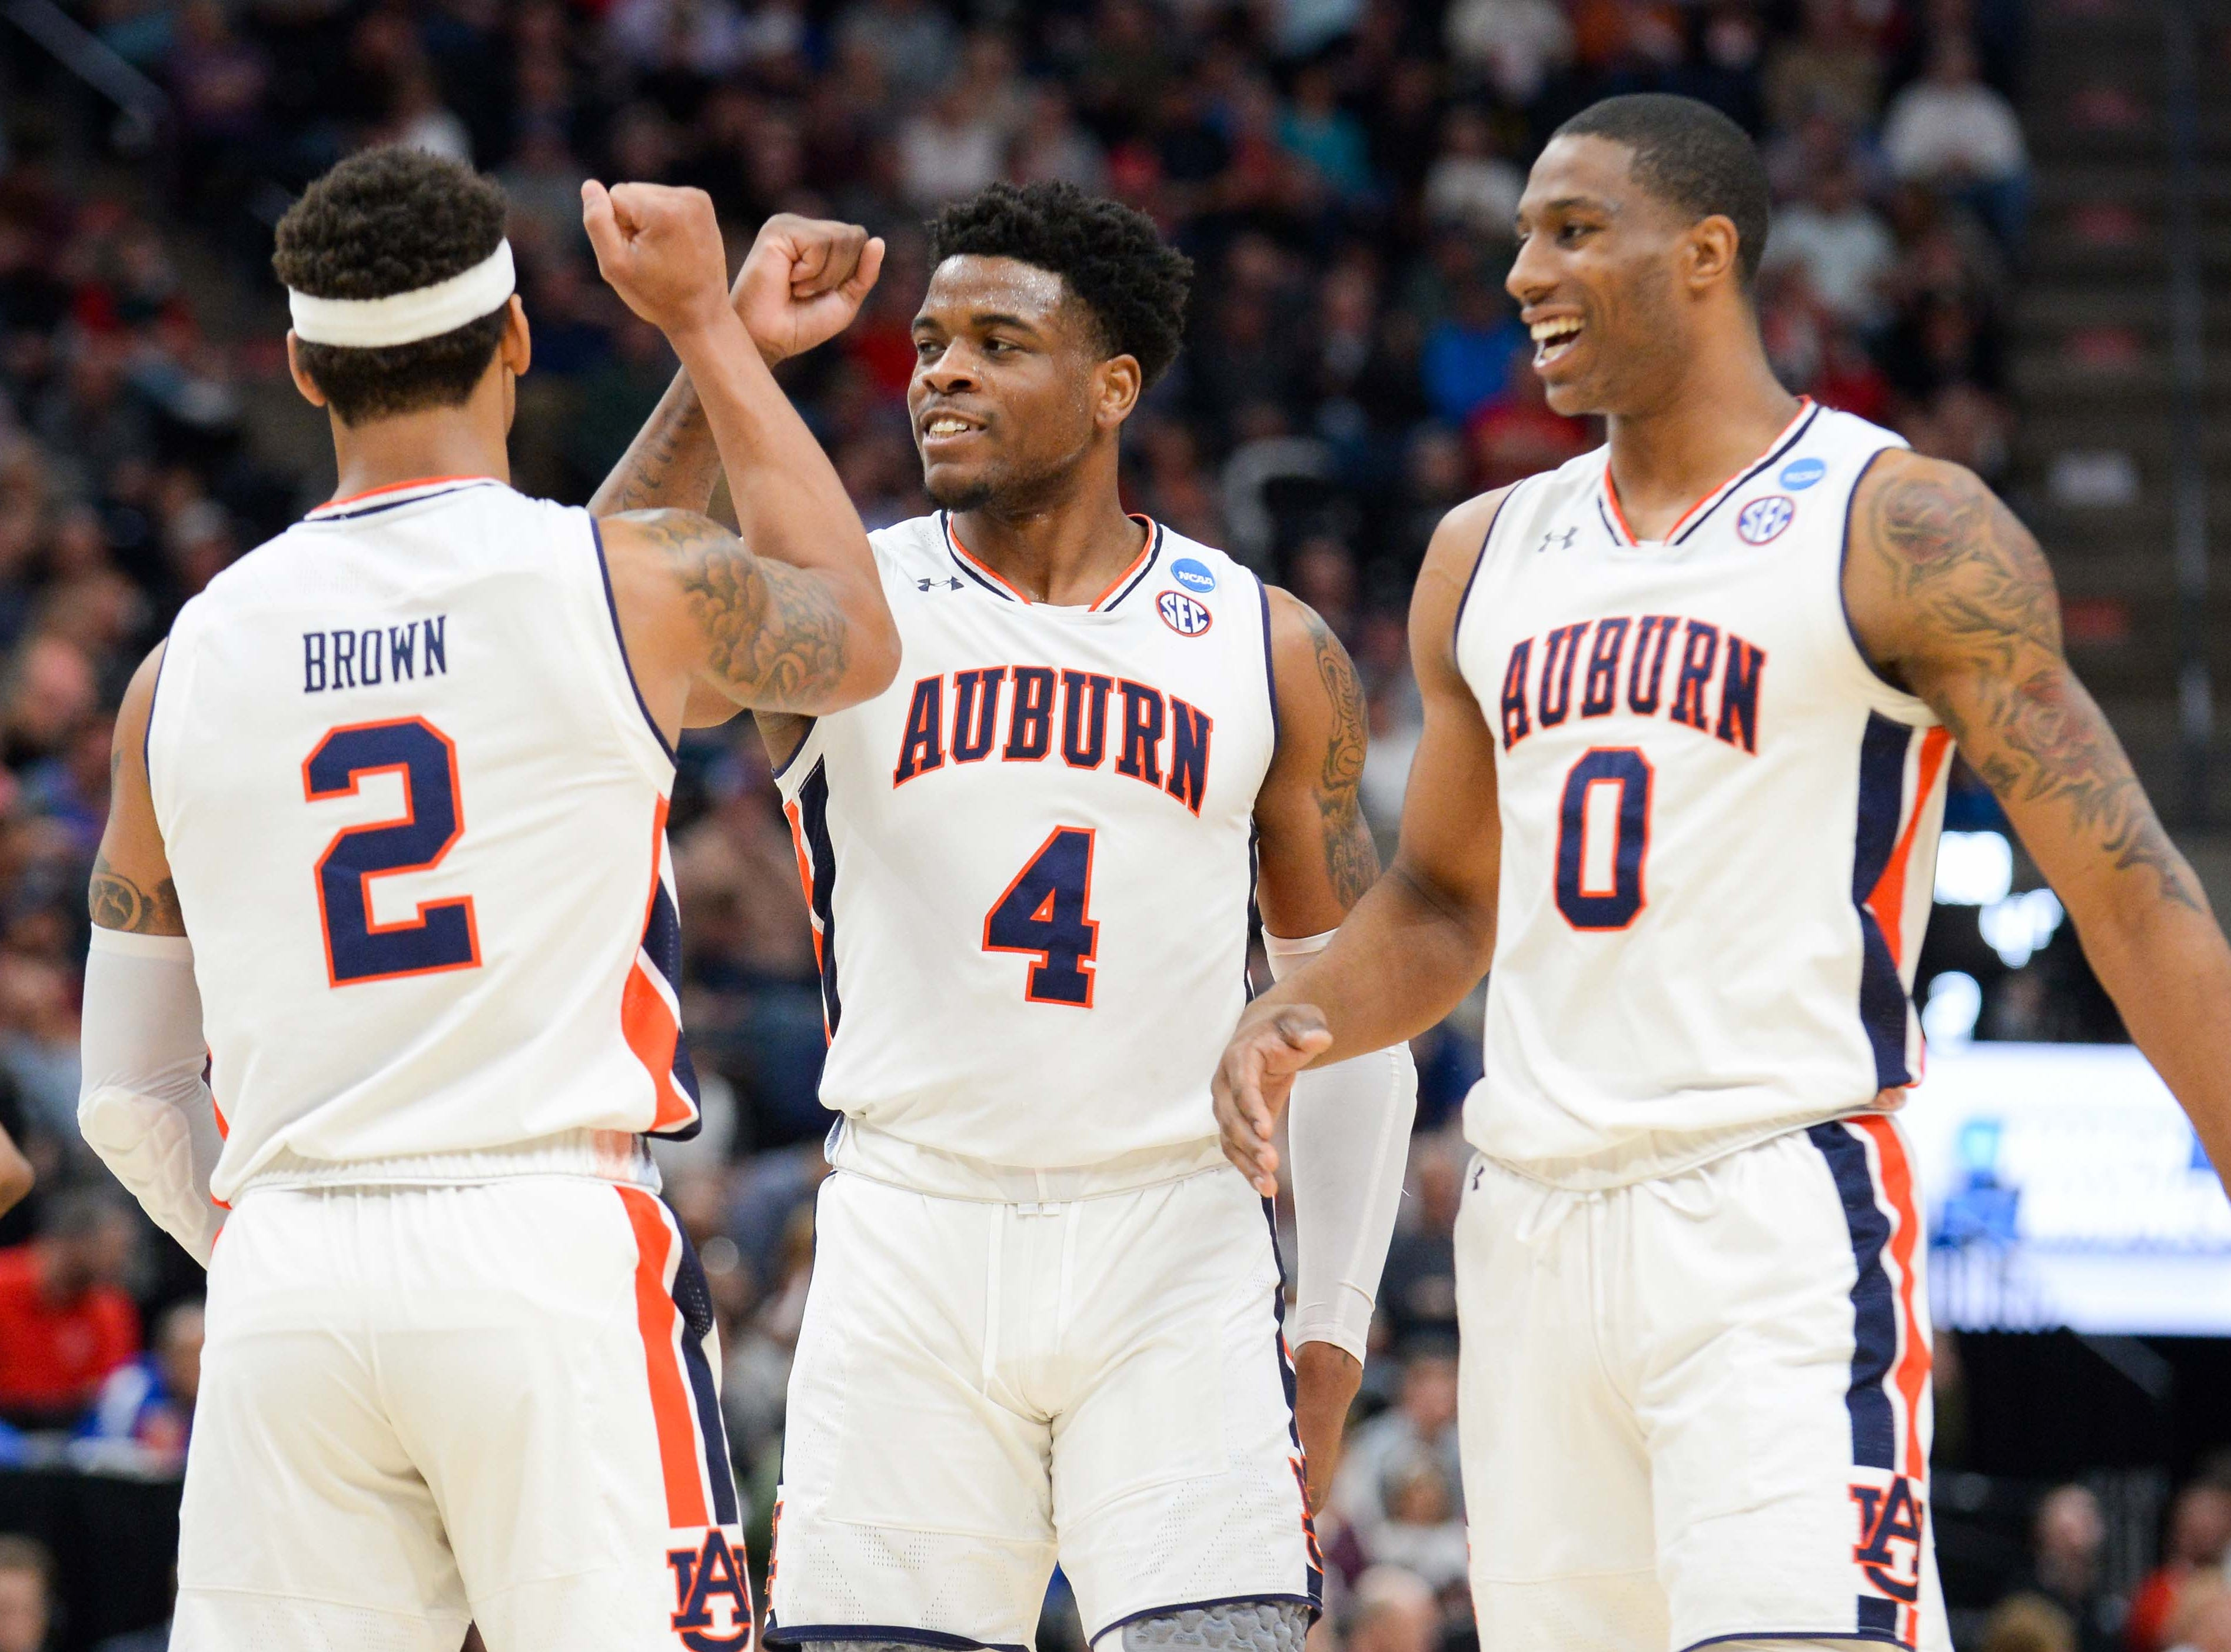 Mar 21, 2019; Salt Lake City, UT, USA; Auburn Tigers guard Bryce Brown (2) reacts with guard Malik Dunbar (4) and forward Horace Spencer (0) during the second half in the first round of the 2019 NCAA Tournament against the New Mexico State Aggies at Vivint Smart Home Arena. Mandatory Credit: Gary A. Vasquez-USA TODAY Sports